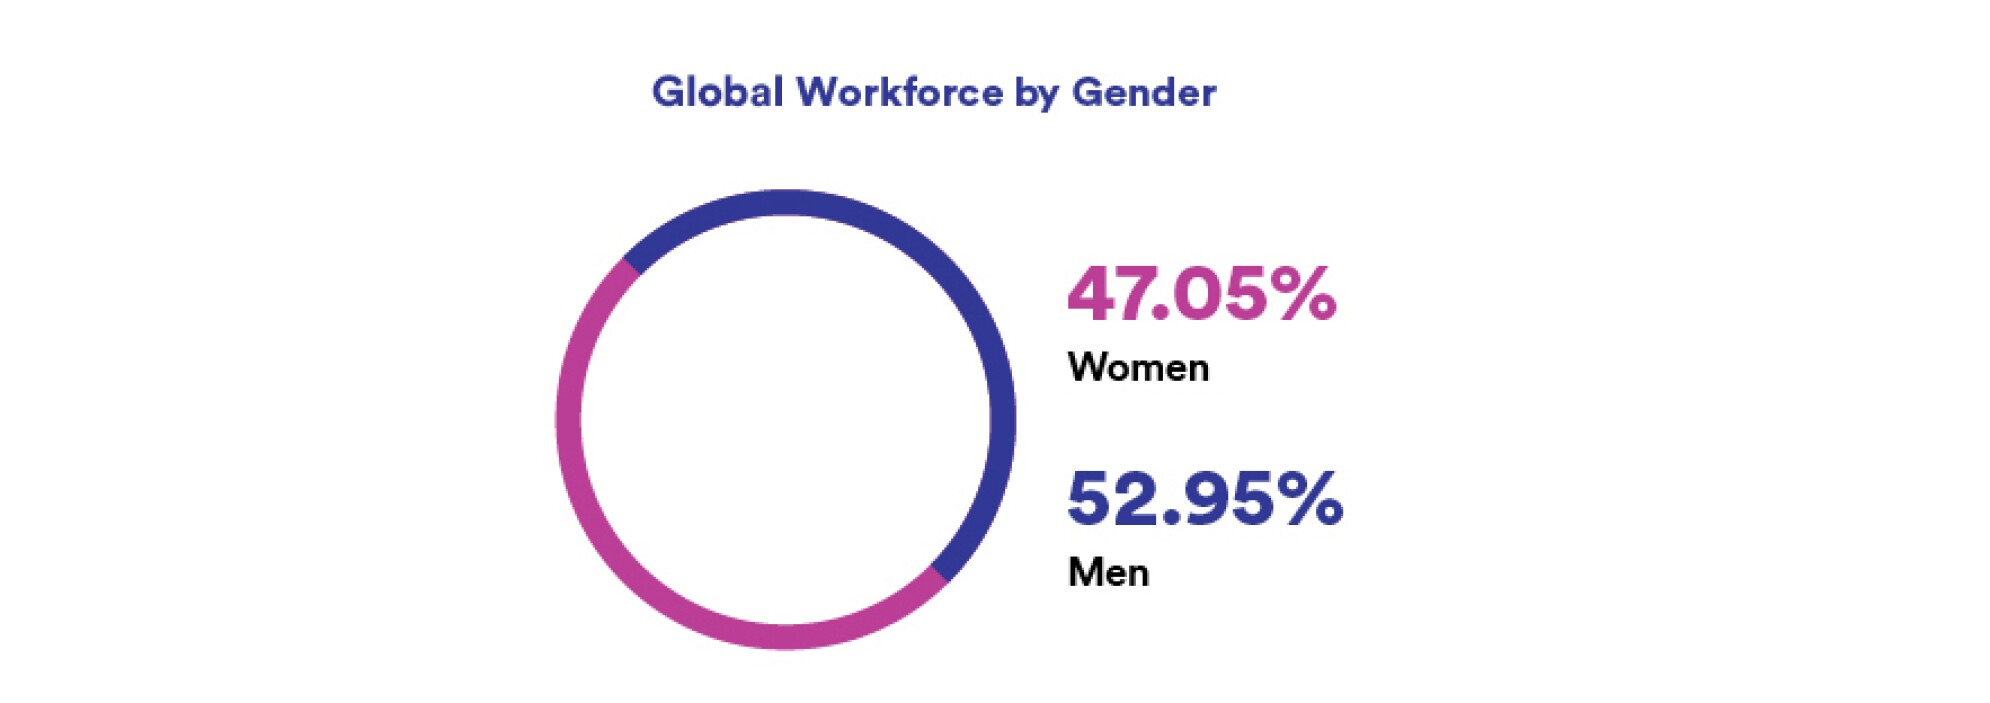 workforcebygender (1).jpg